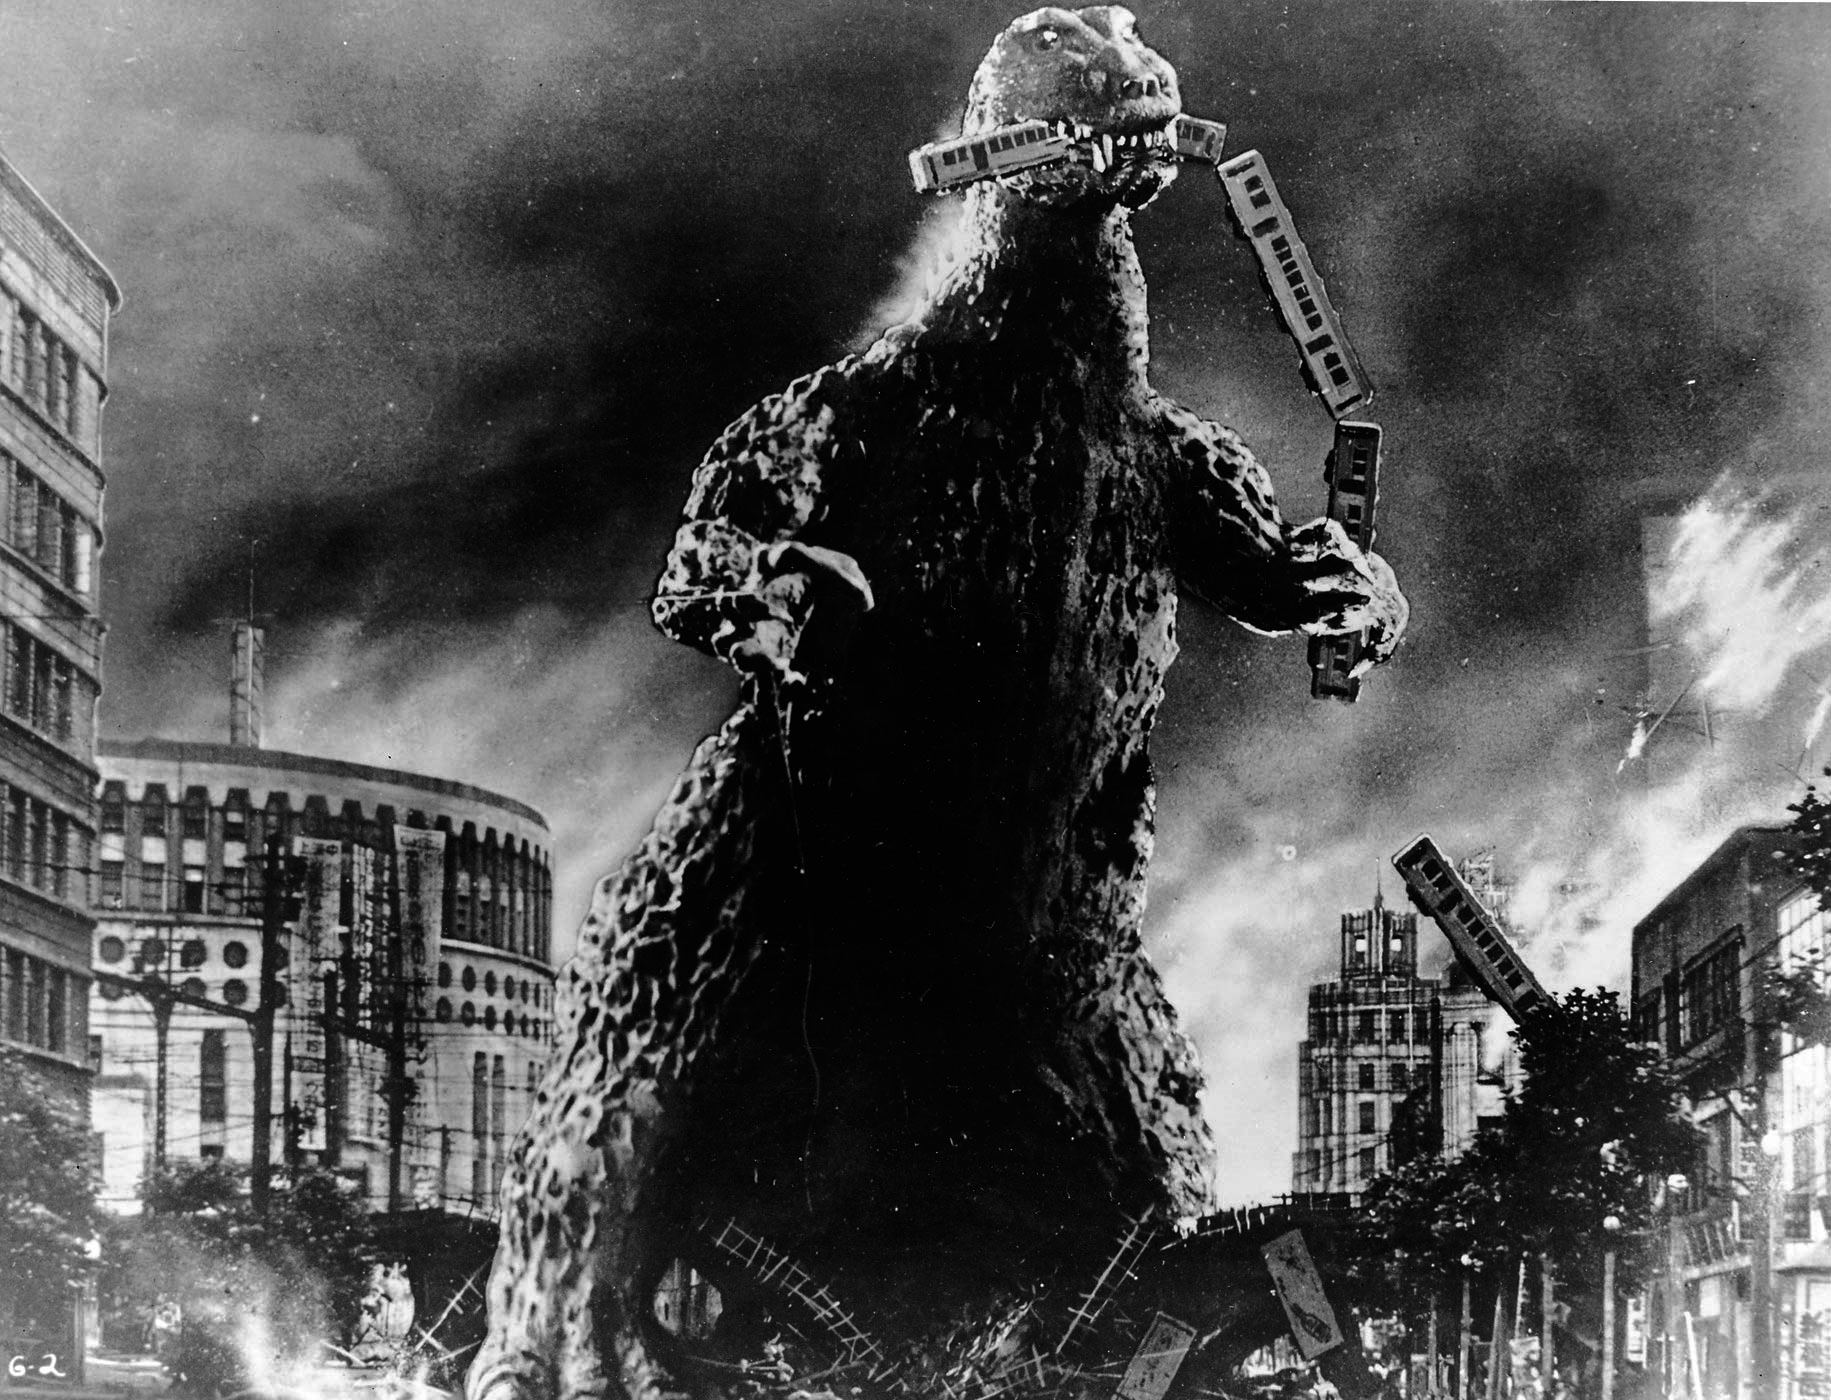 Godzilla rampages through Tokyo in Godzilla, King of the Monsters (1954)